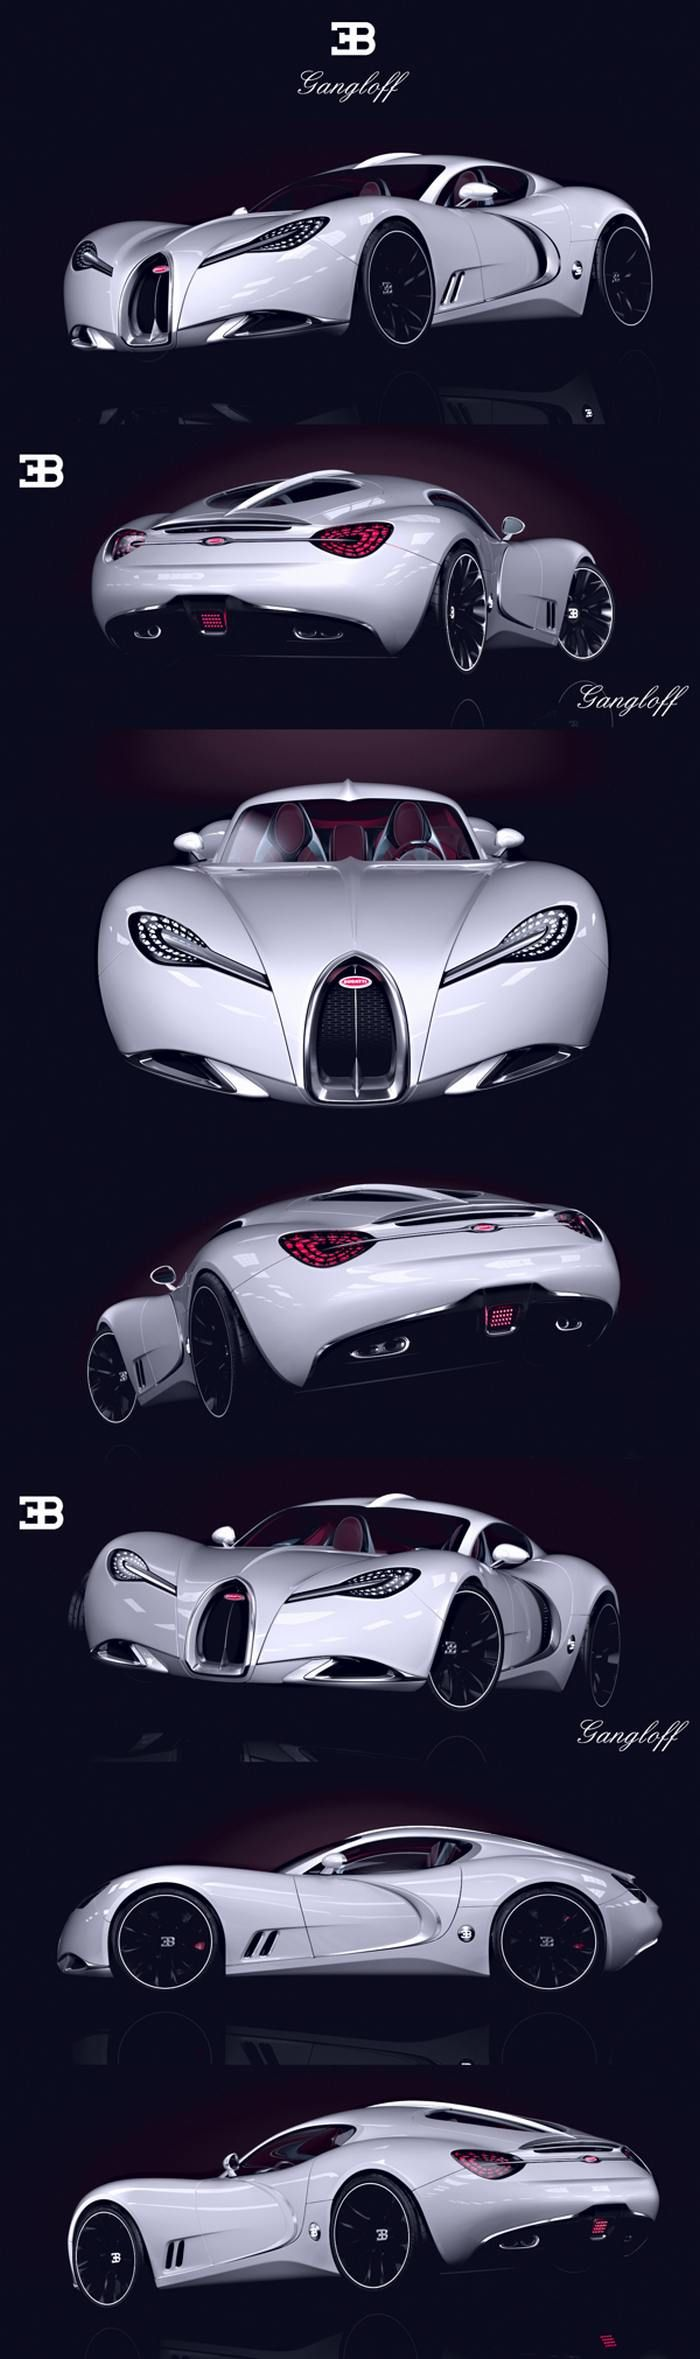 Bugatti Gangloff Concept Car Got a successful online global business? Need a better electronic payment strategy? Contact lburrell@aramorpayments.com for competitive mid-high risk global credit card and debit card processing solutions.